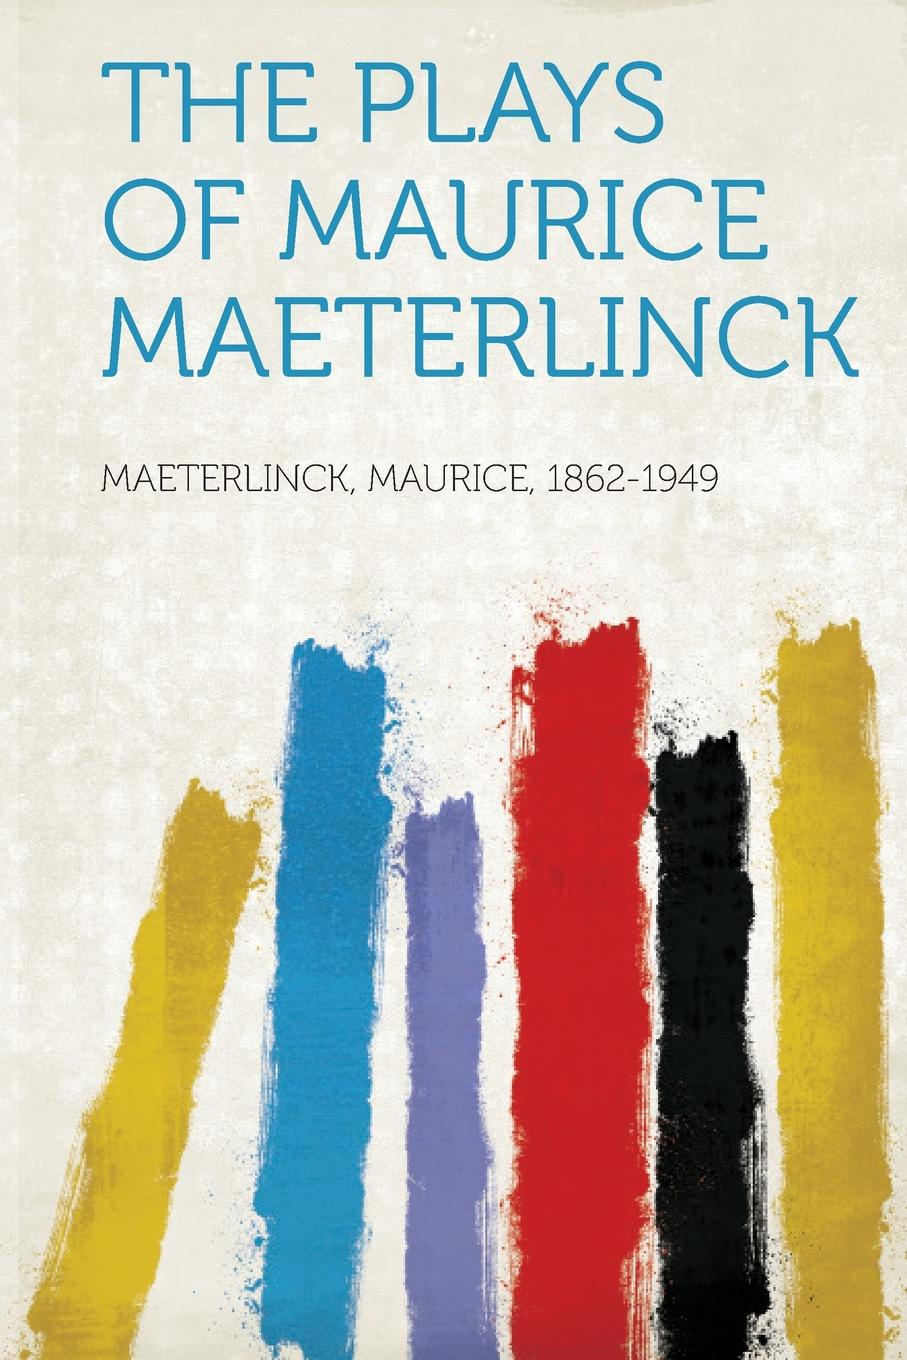 Maurice Maeterlinck The Plays of Maurice Maeterlinck jethro bithell life and writings of maurice maeterlinck